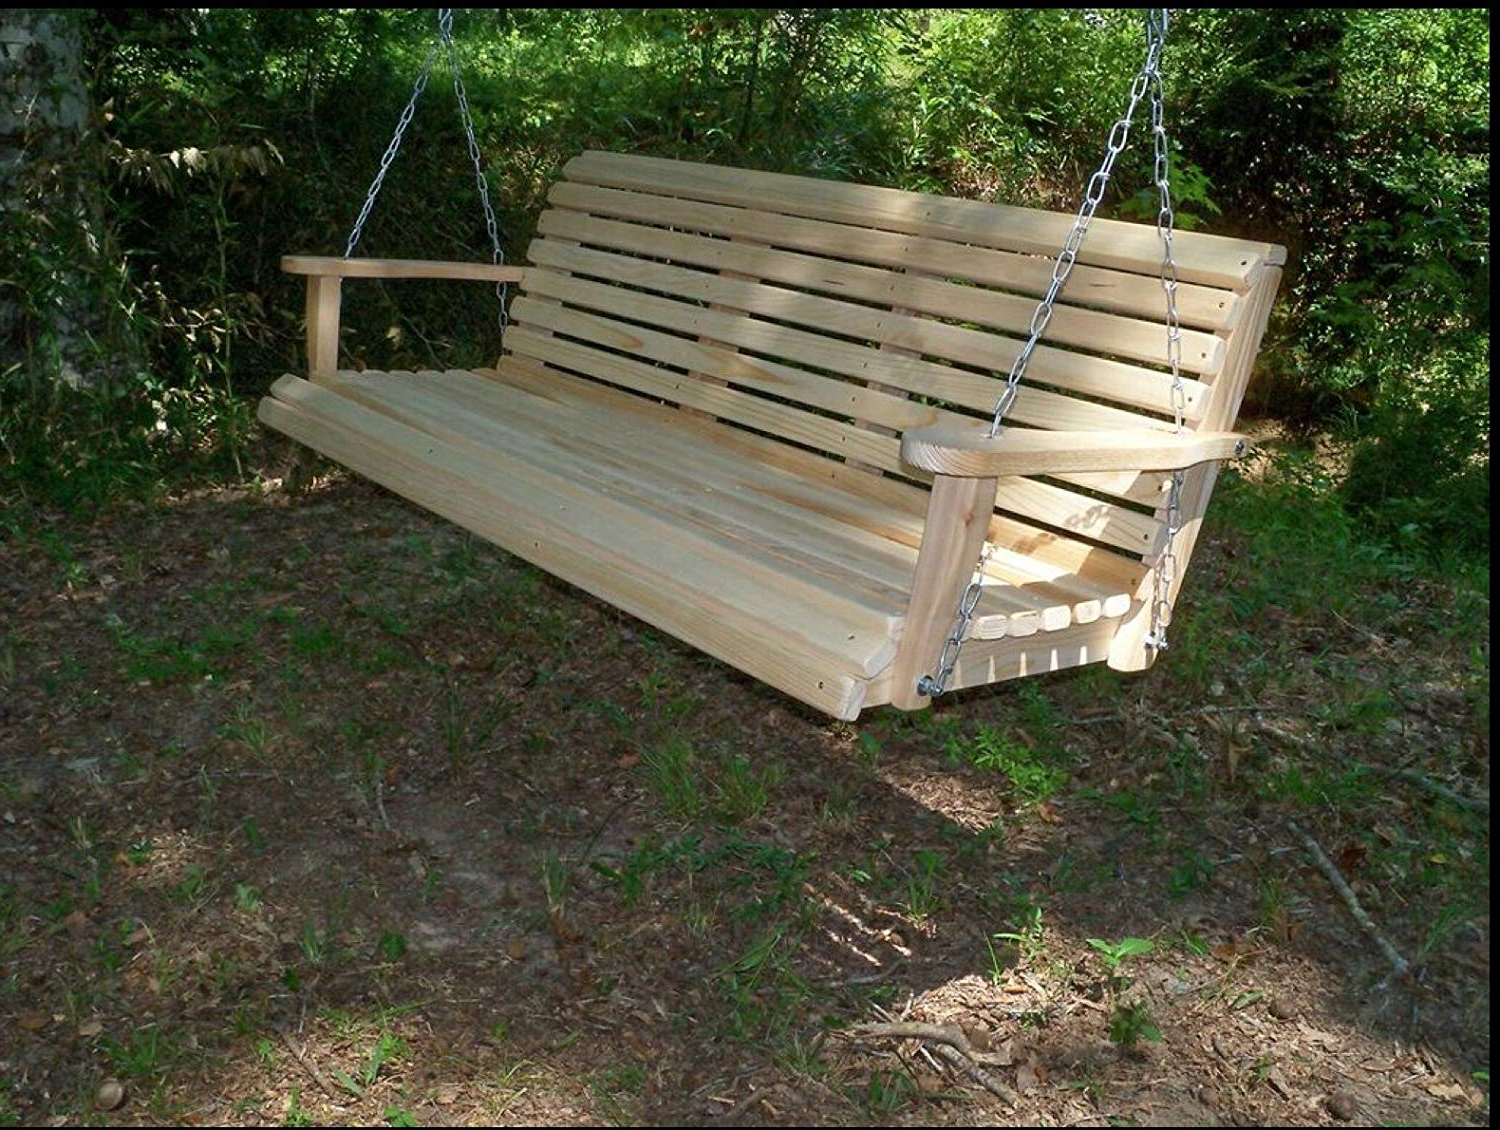 Porch Swings Regarding Well Liked Ecommersify Inc 5 Five Feet Ft Made In The Usa Rot Resistant Cypress Lumber Roll Back Porch Swing With Swing Mate Comfort Springs (View 9 of 30)